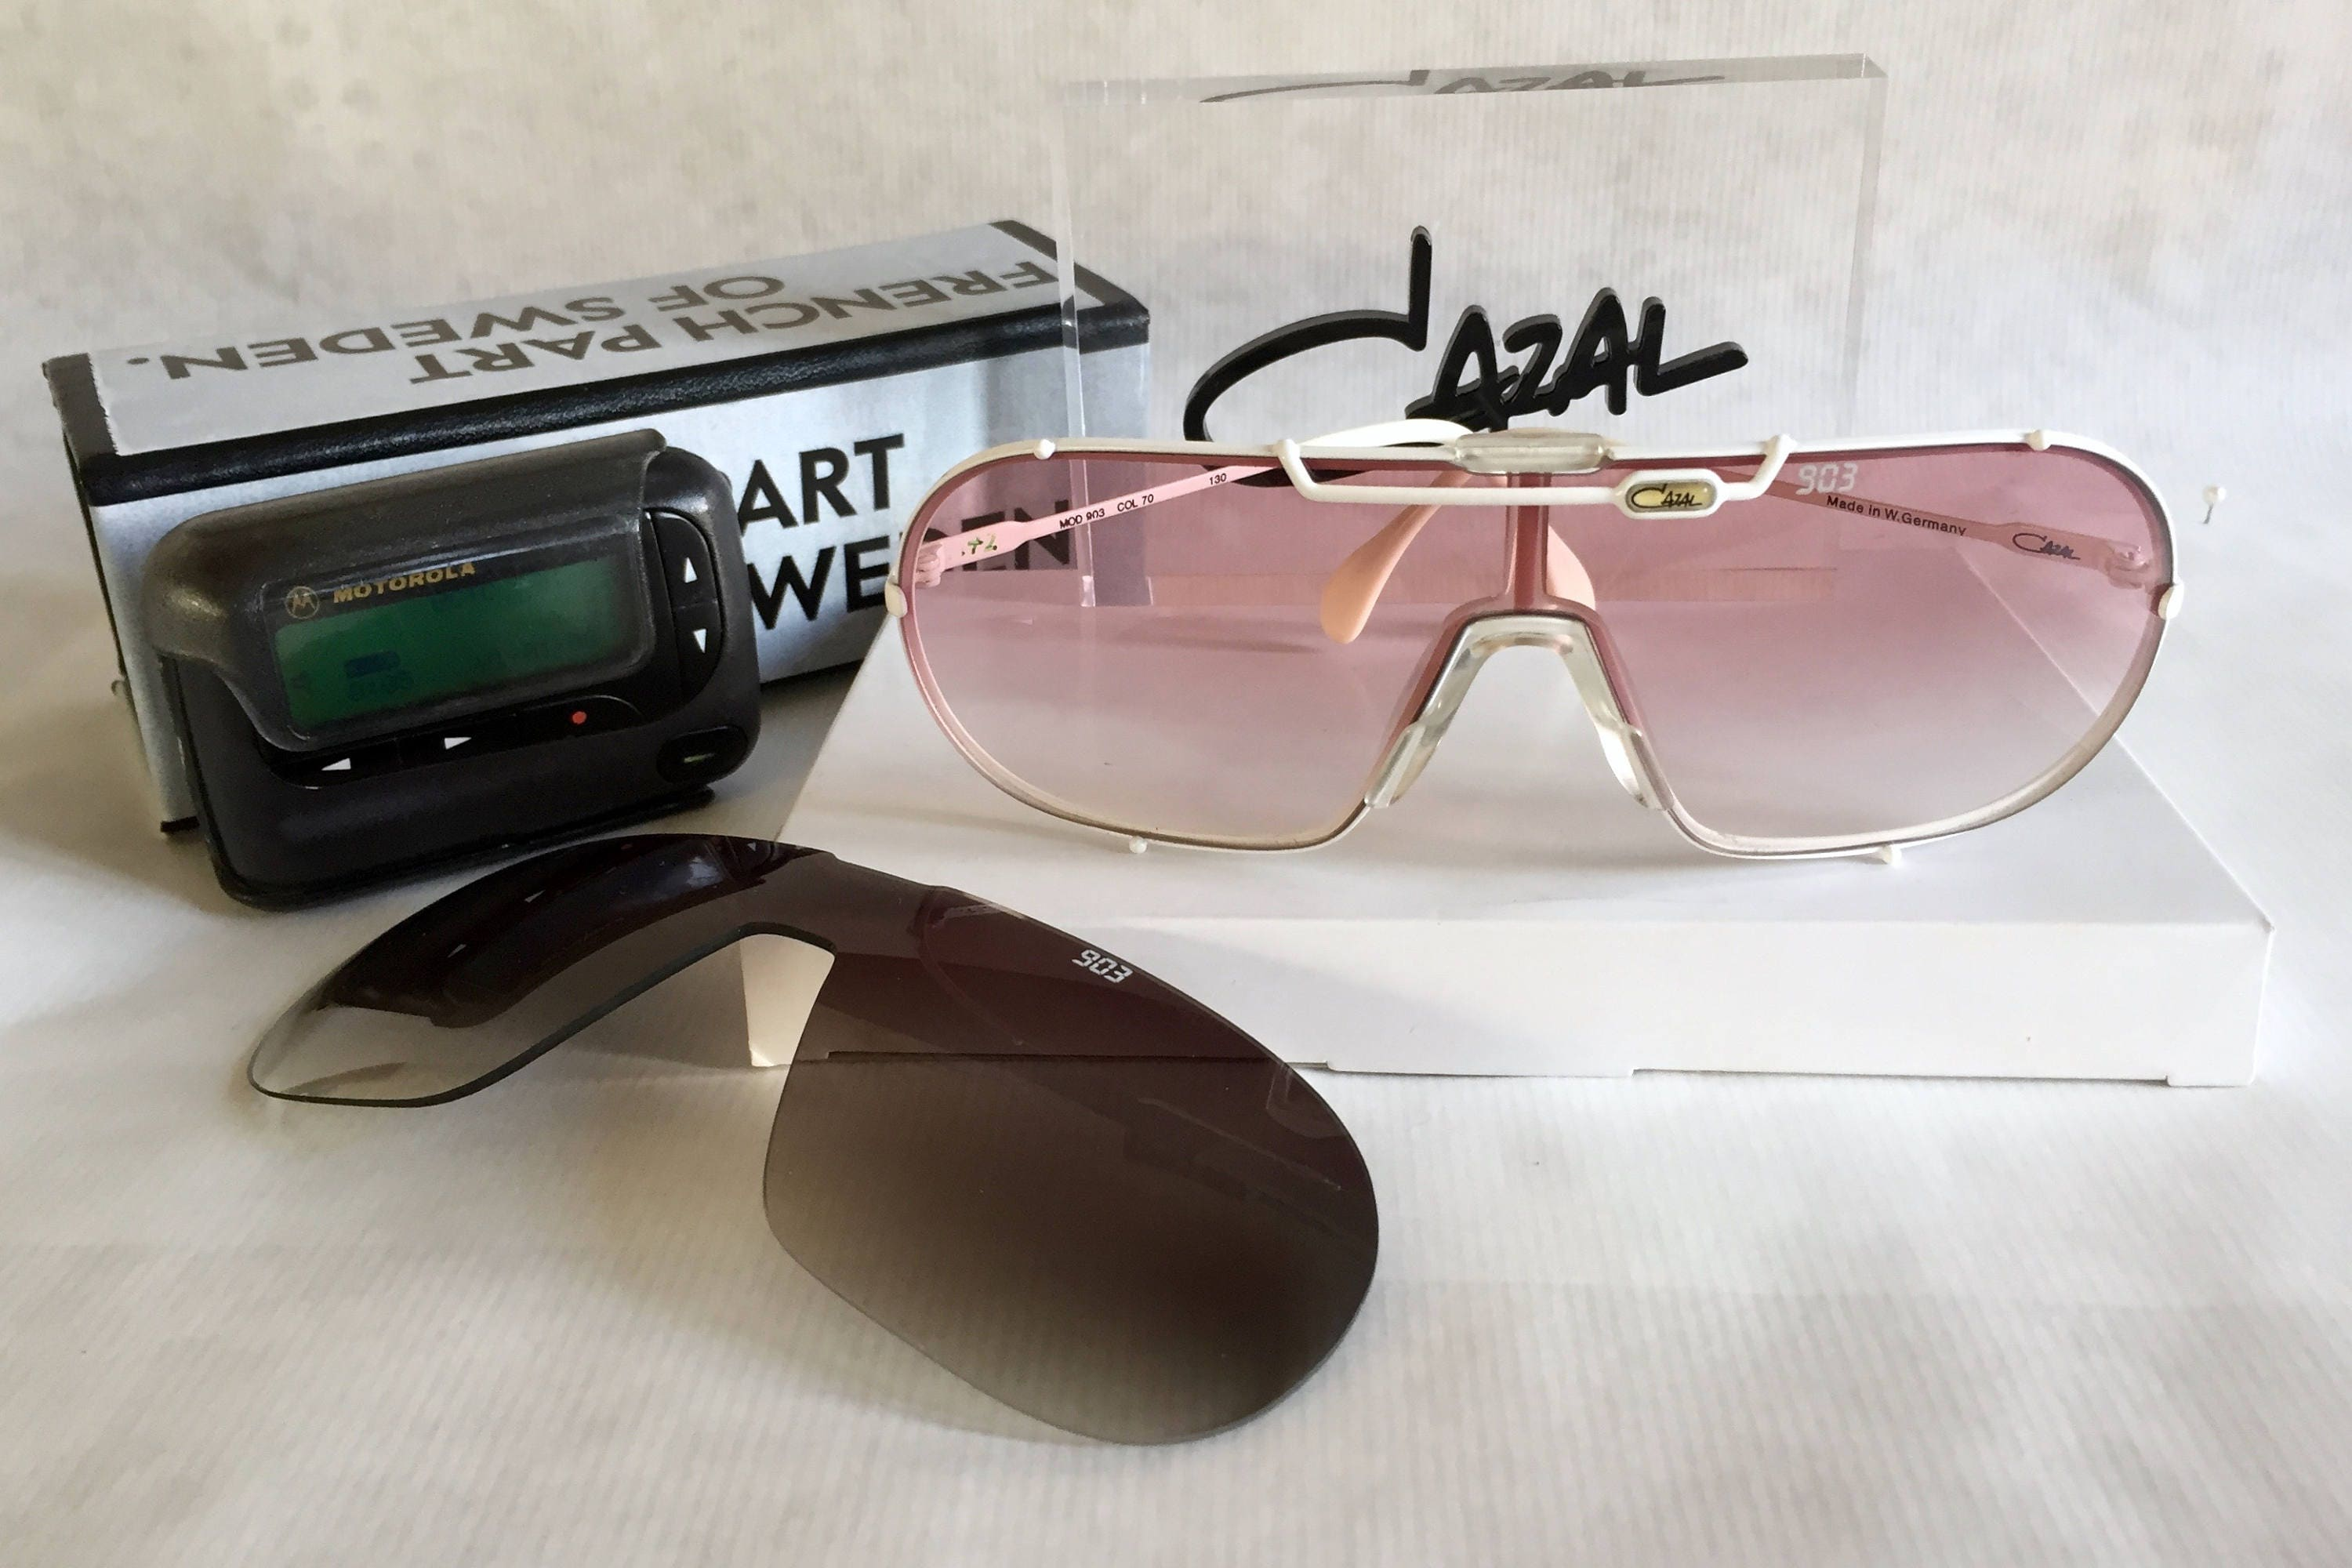 6677c3a19f5f Cazal 903 Col 70 Vintage Sunglasses New Old Stock including 2 ...